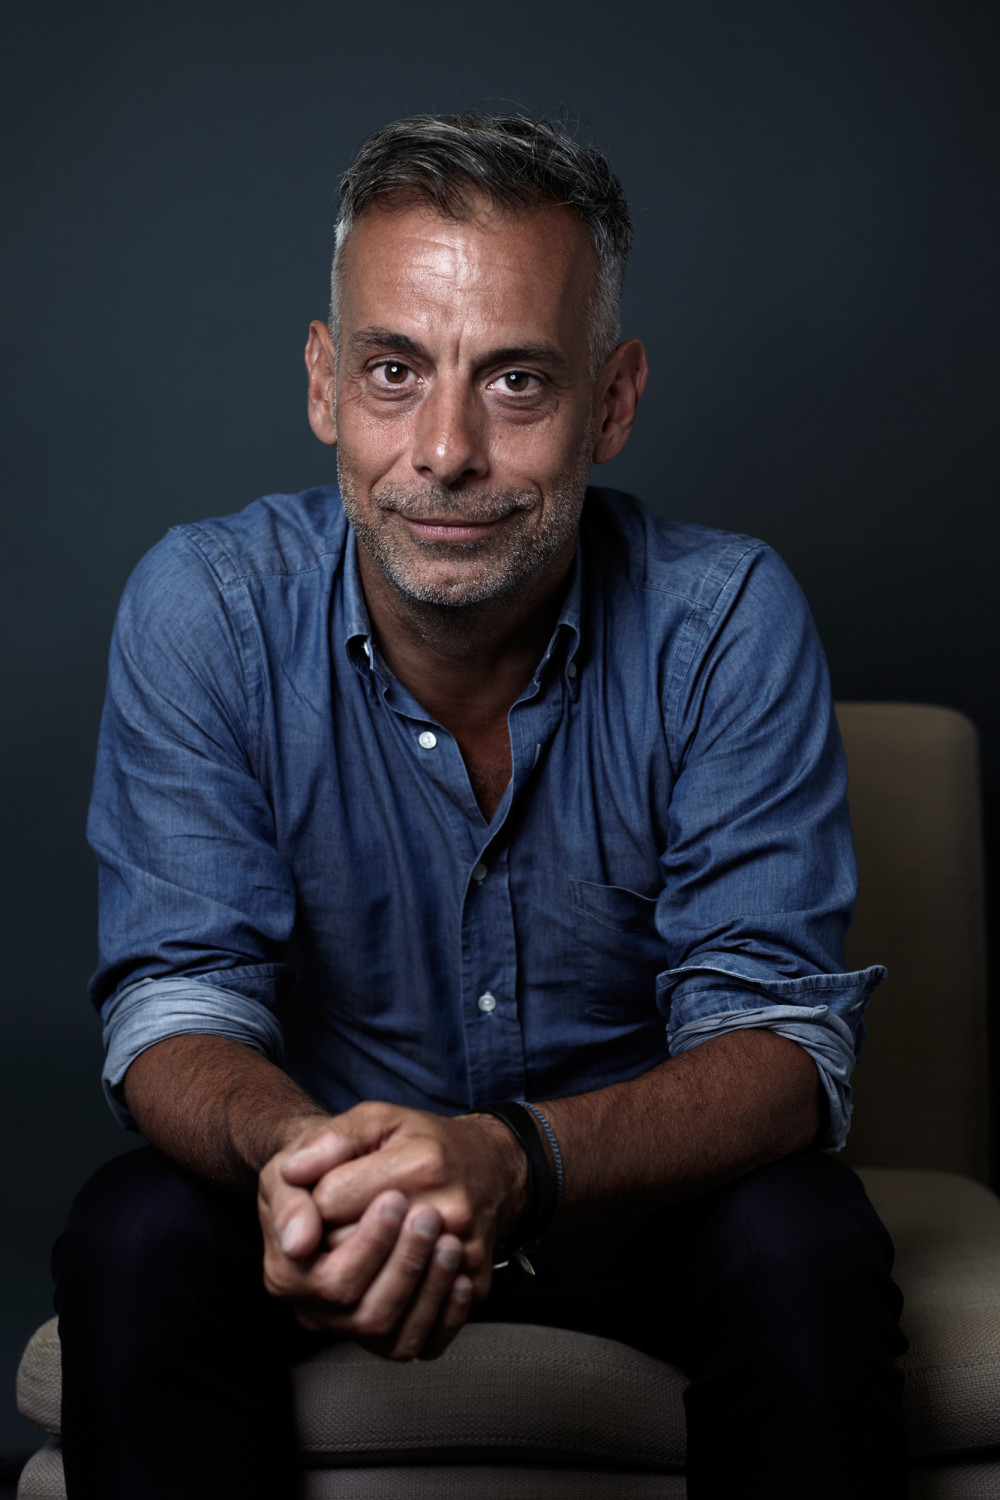 Tony And Joe S >> Joe Mantello - Wikipedia